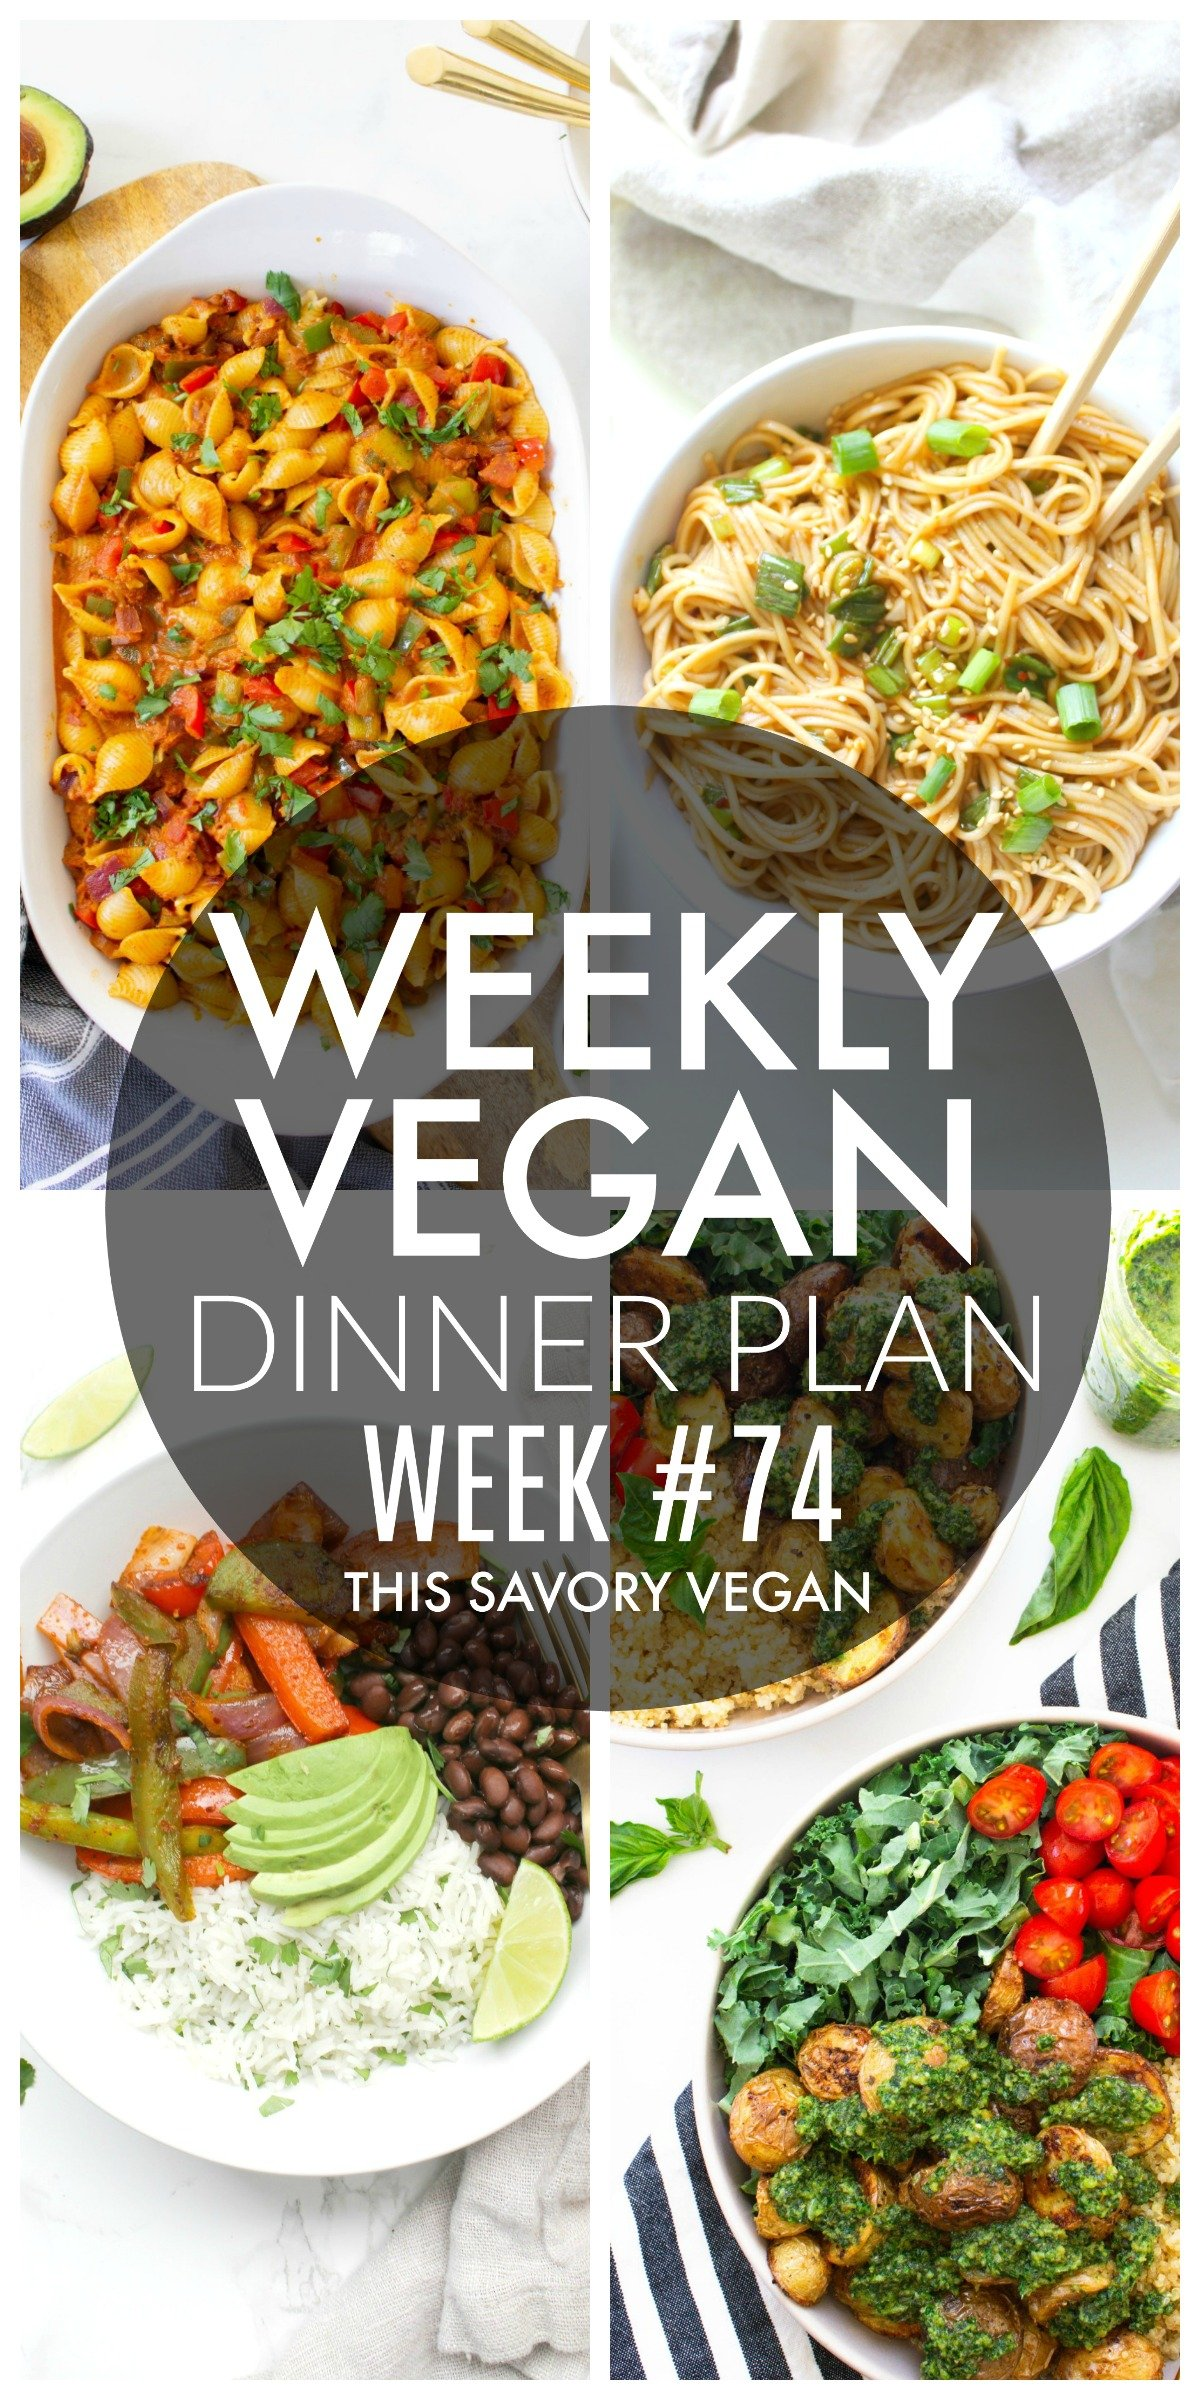 Weekly Vegan Dinner Plan #74 - five nights worth of vegan dinners to help inspire your menu. Choose one recipe to add to your rotation or make them all - shopping list included | ThisSavoryVegan.com #thissavoryvegan #mealprep #dinnerplan